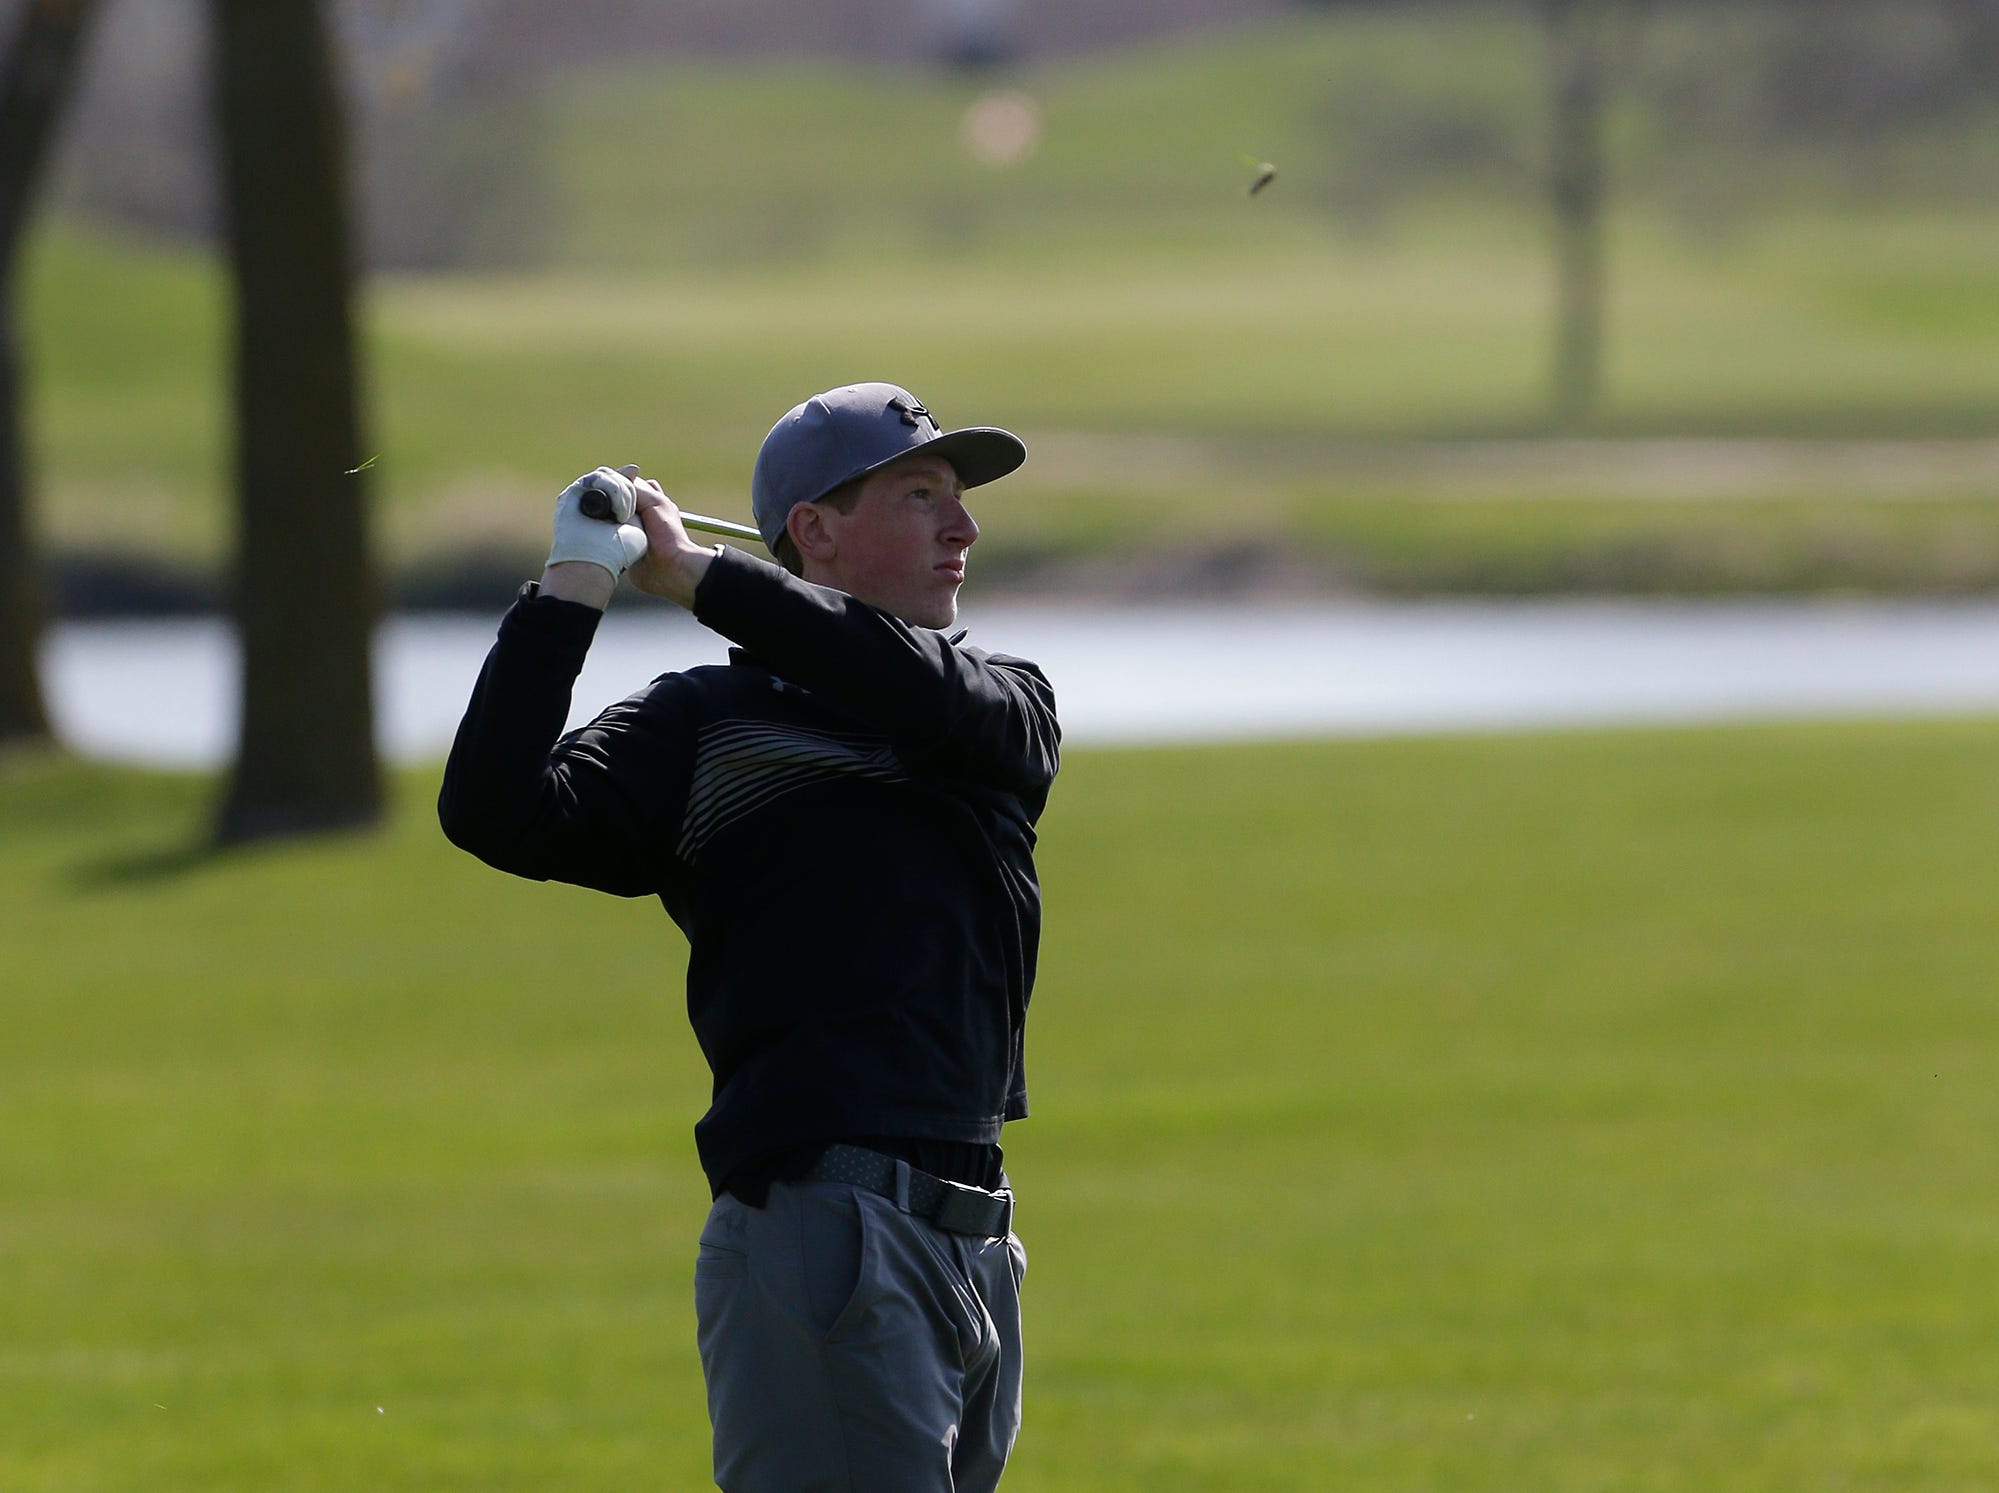 Tyler Selenske of Mosinee High School competes in the Fond du Lac High School golf invite Saturday, May 4, 2019 at Rolling Meadows Golf Course in Fond du Lac, Wis. Doug Raflik/USA TODAY NETWORK-Wisconsin